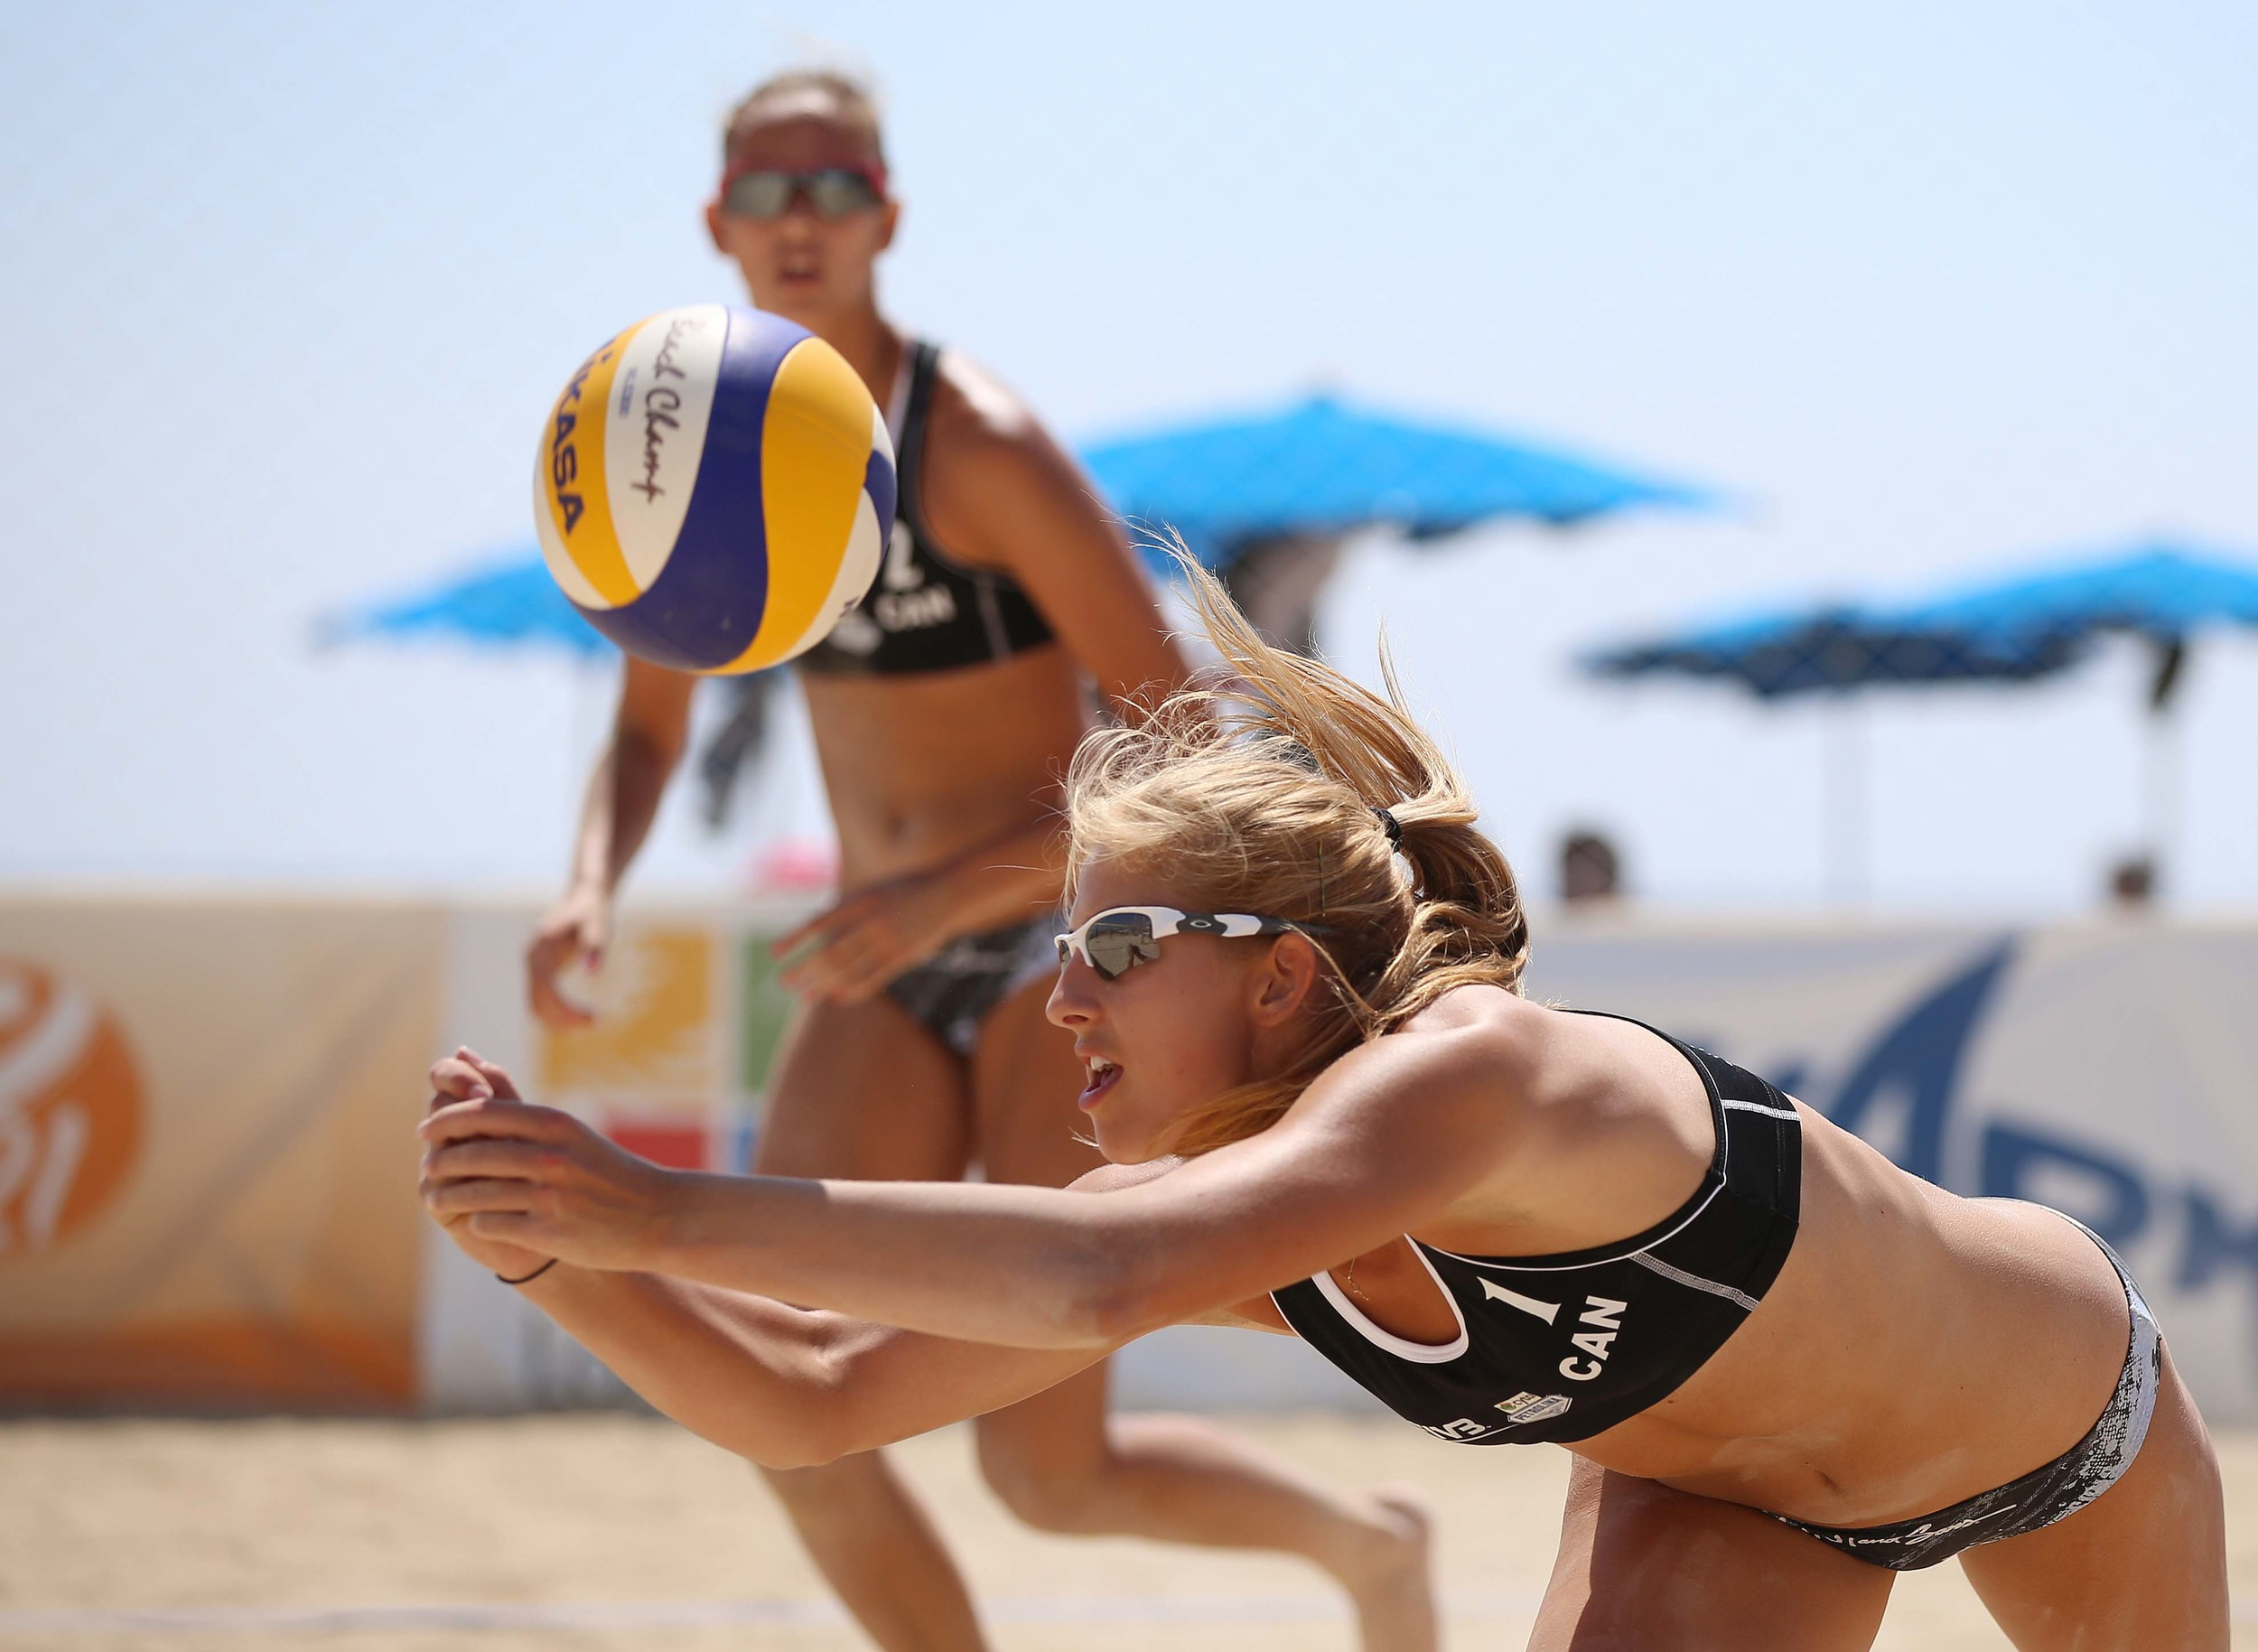 Tia Miric makes a dg while partnet Sophie Bukovec looks on. The pair has advanced to the quarterfinals.